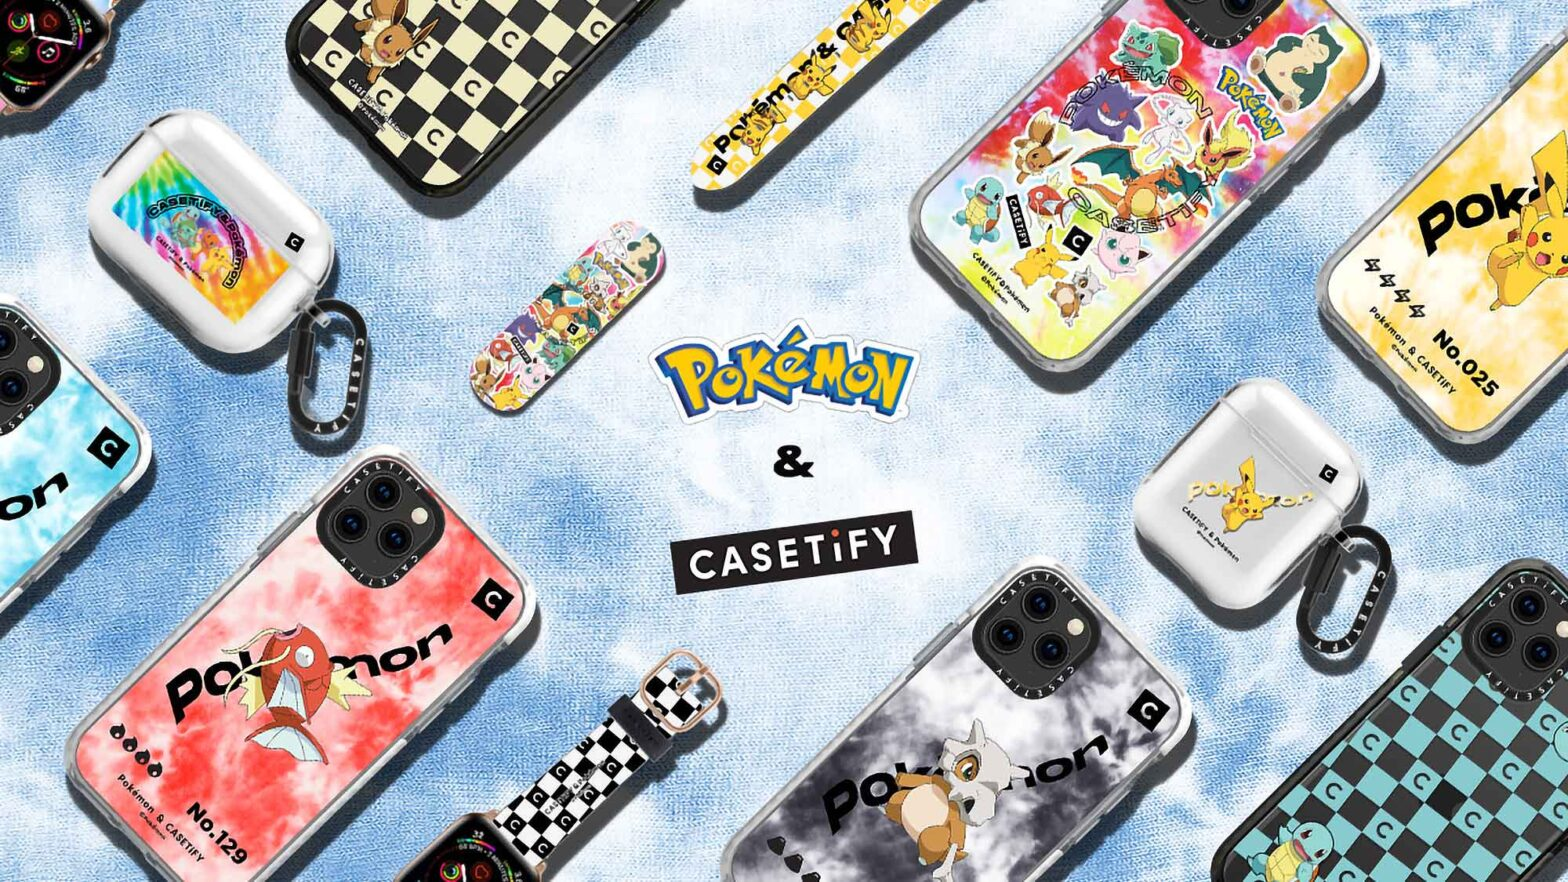 Pokémon x CASETiFY Collection